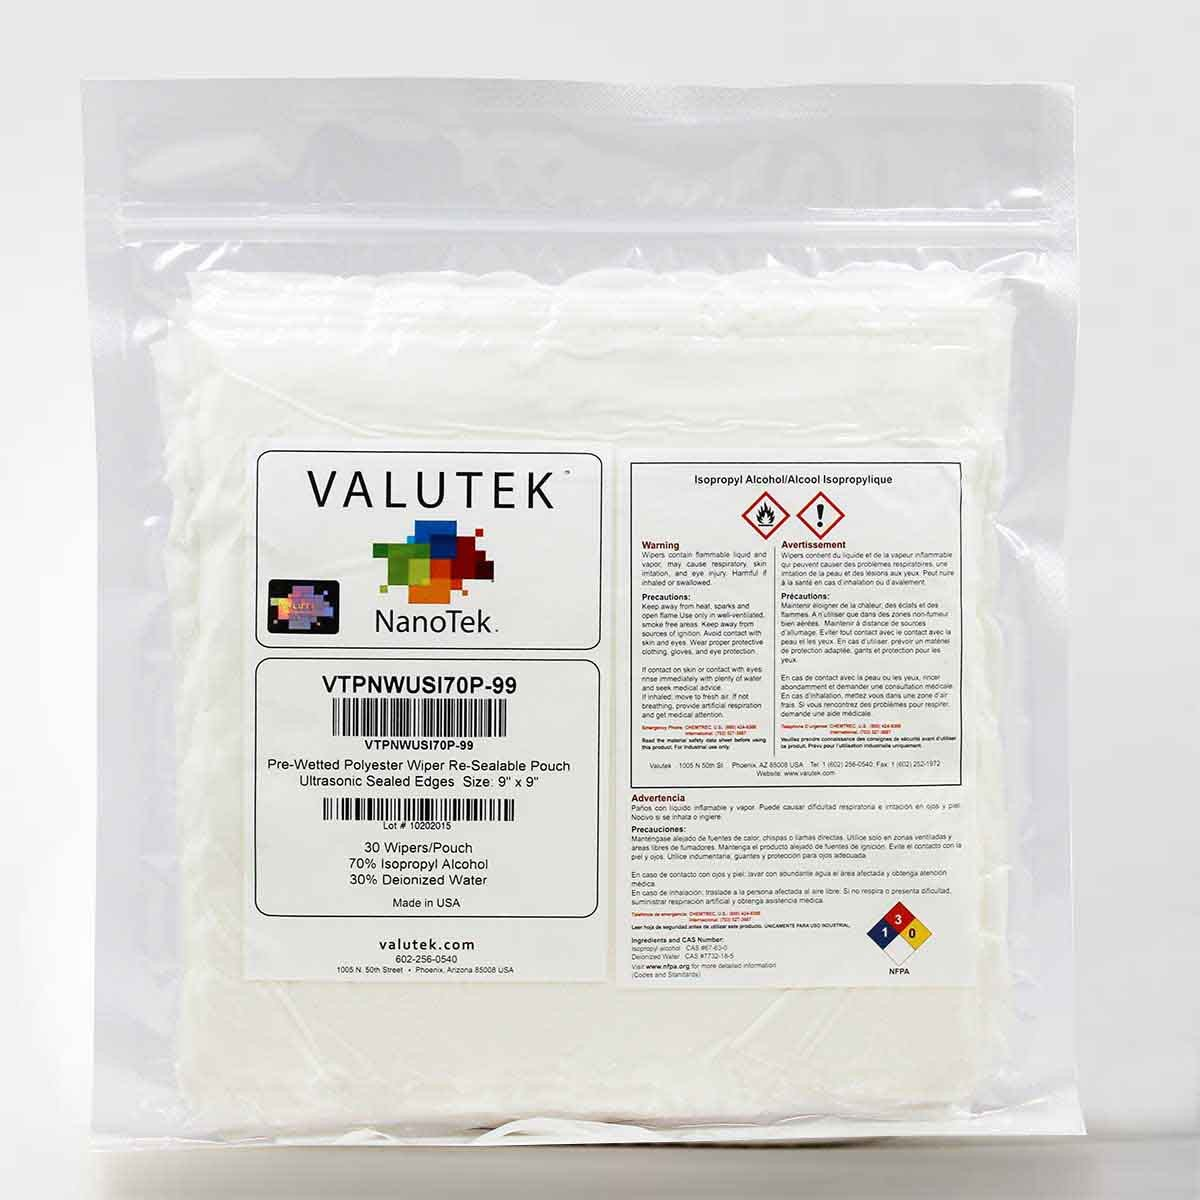 Valutek 70% Isopropyl Alcohol Wipes / 30% Deionized Water | 30 Wipers/Pouch [Ultrasonic Sealed Polyester Wiper in Clear Pouch - Size 9''x9''] by Valutek